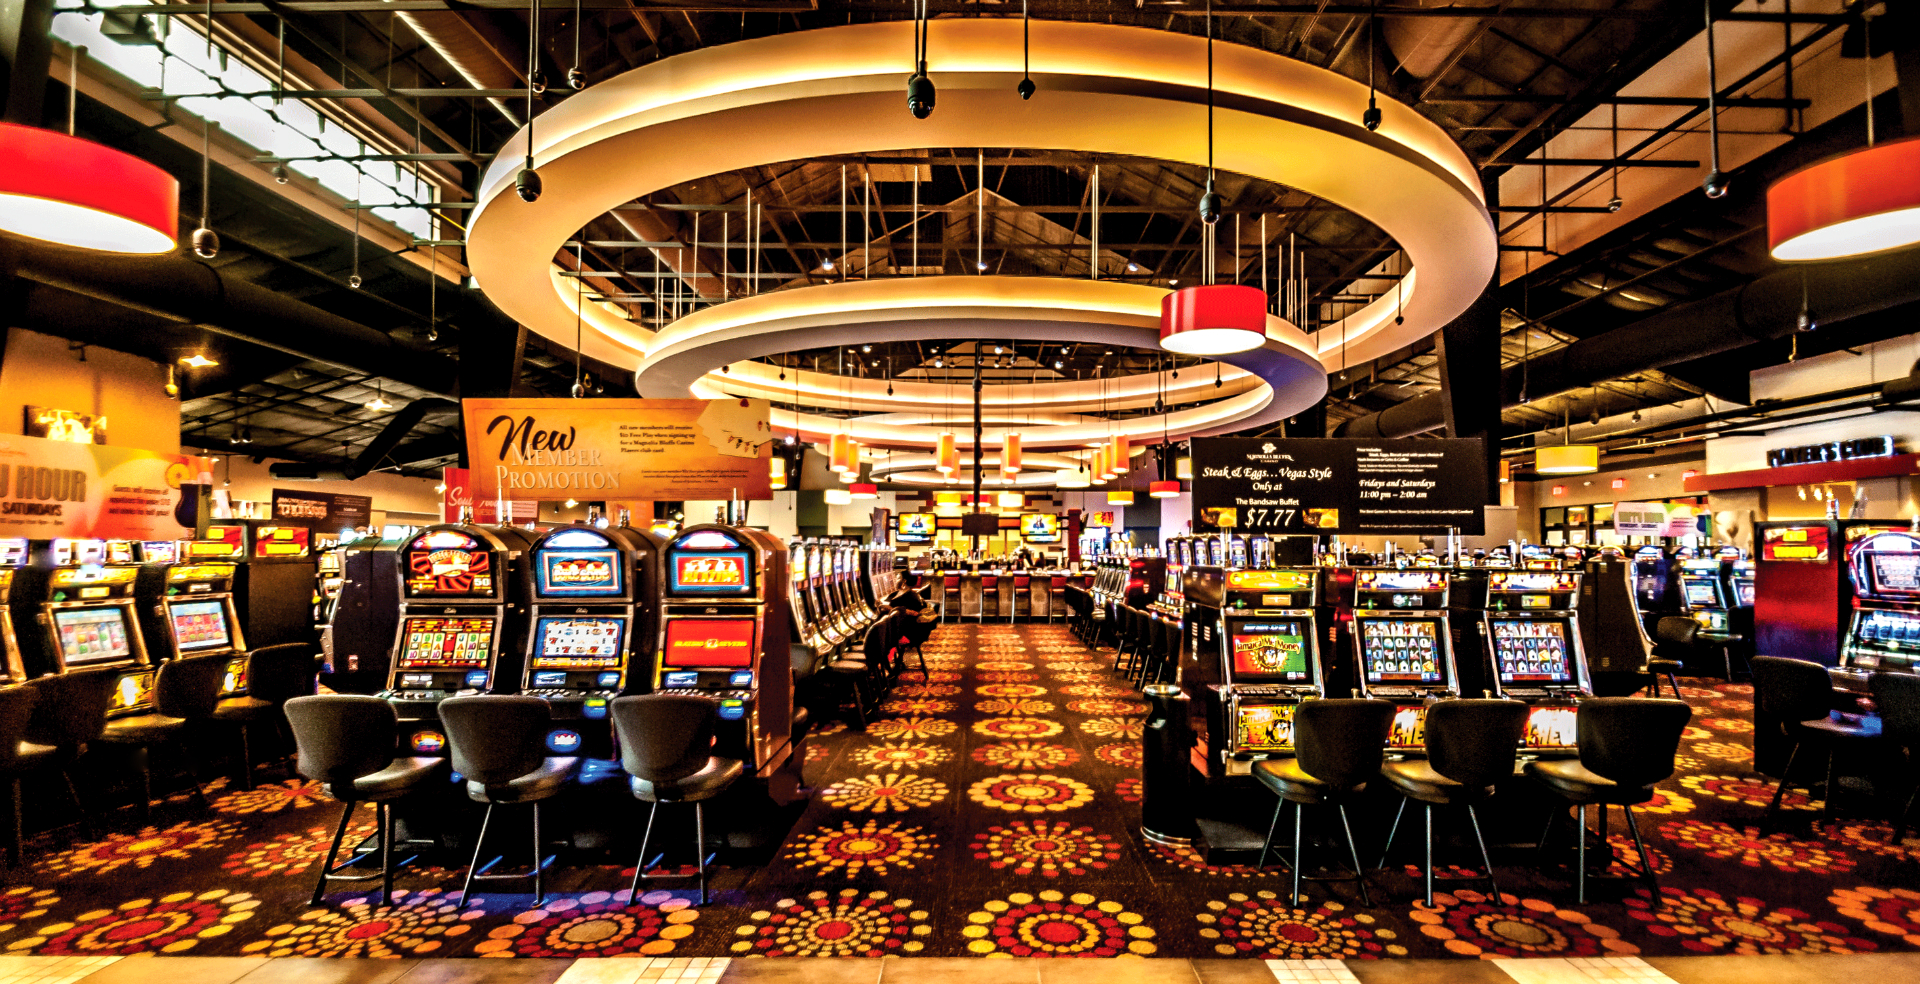 List Of   The Slot Machine Games You Can Choose From The Array Of Games!